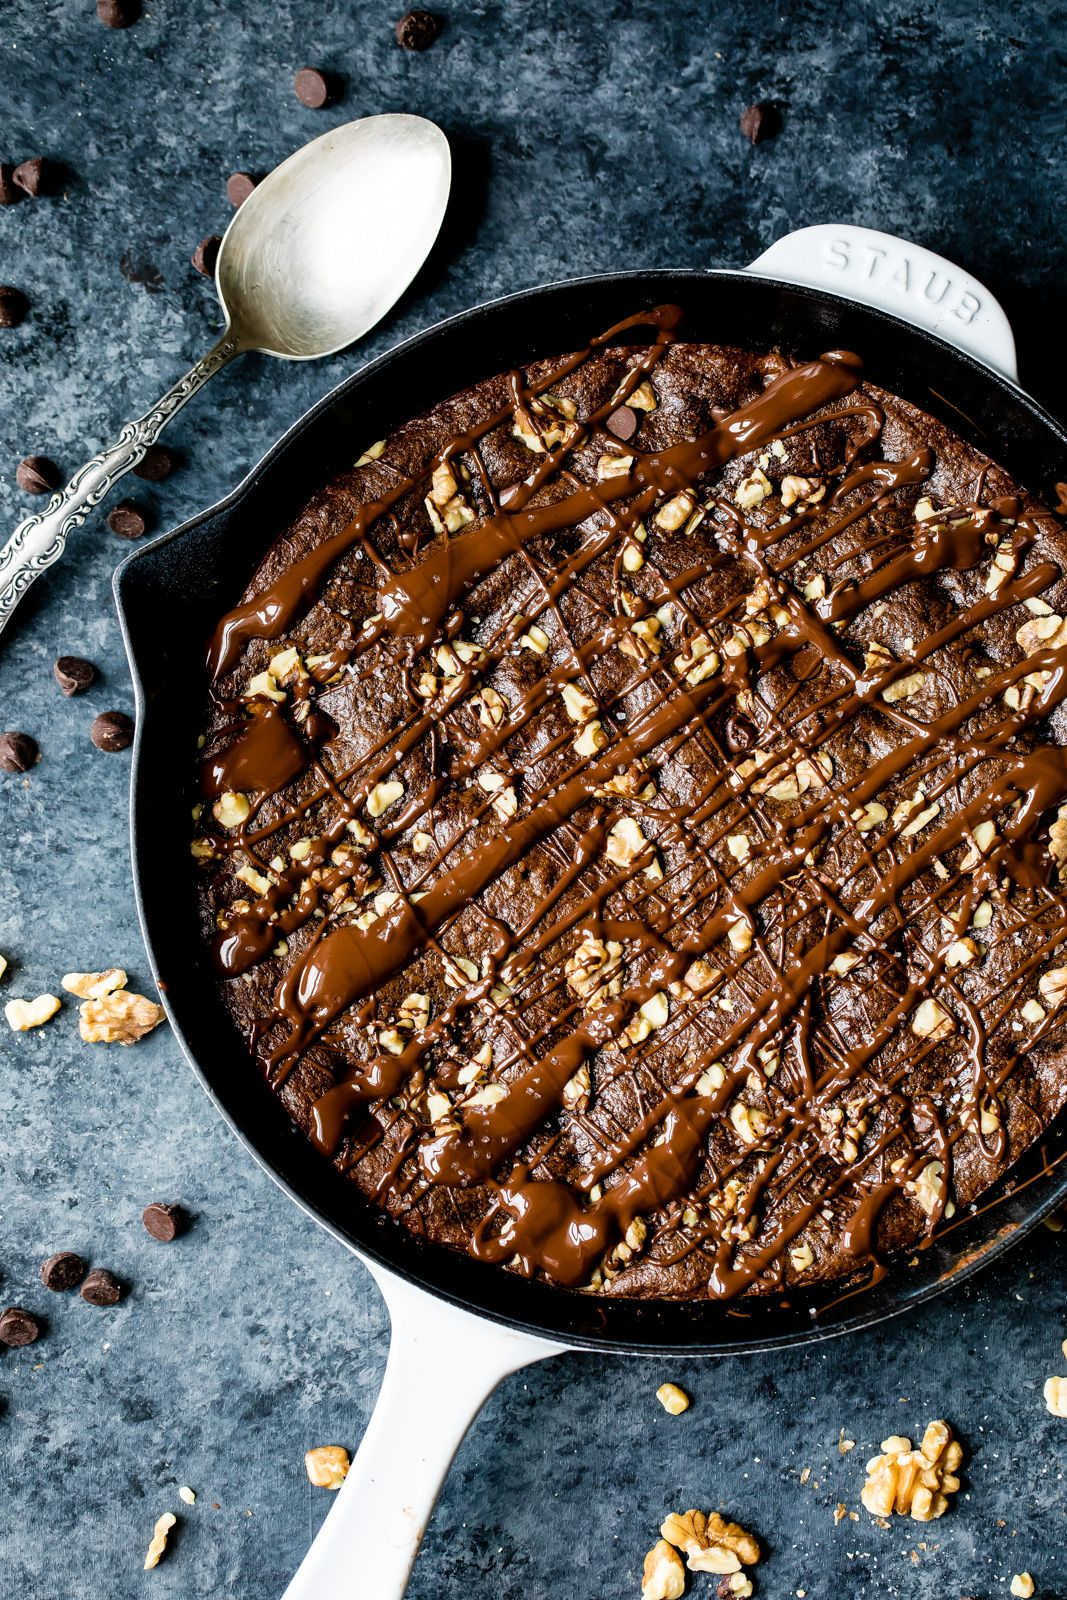 AMAZING skillet brownies made without grains, gluten or dairy. These super fudgy walnut brownies ta